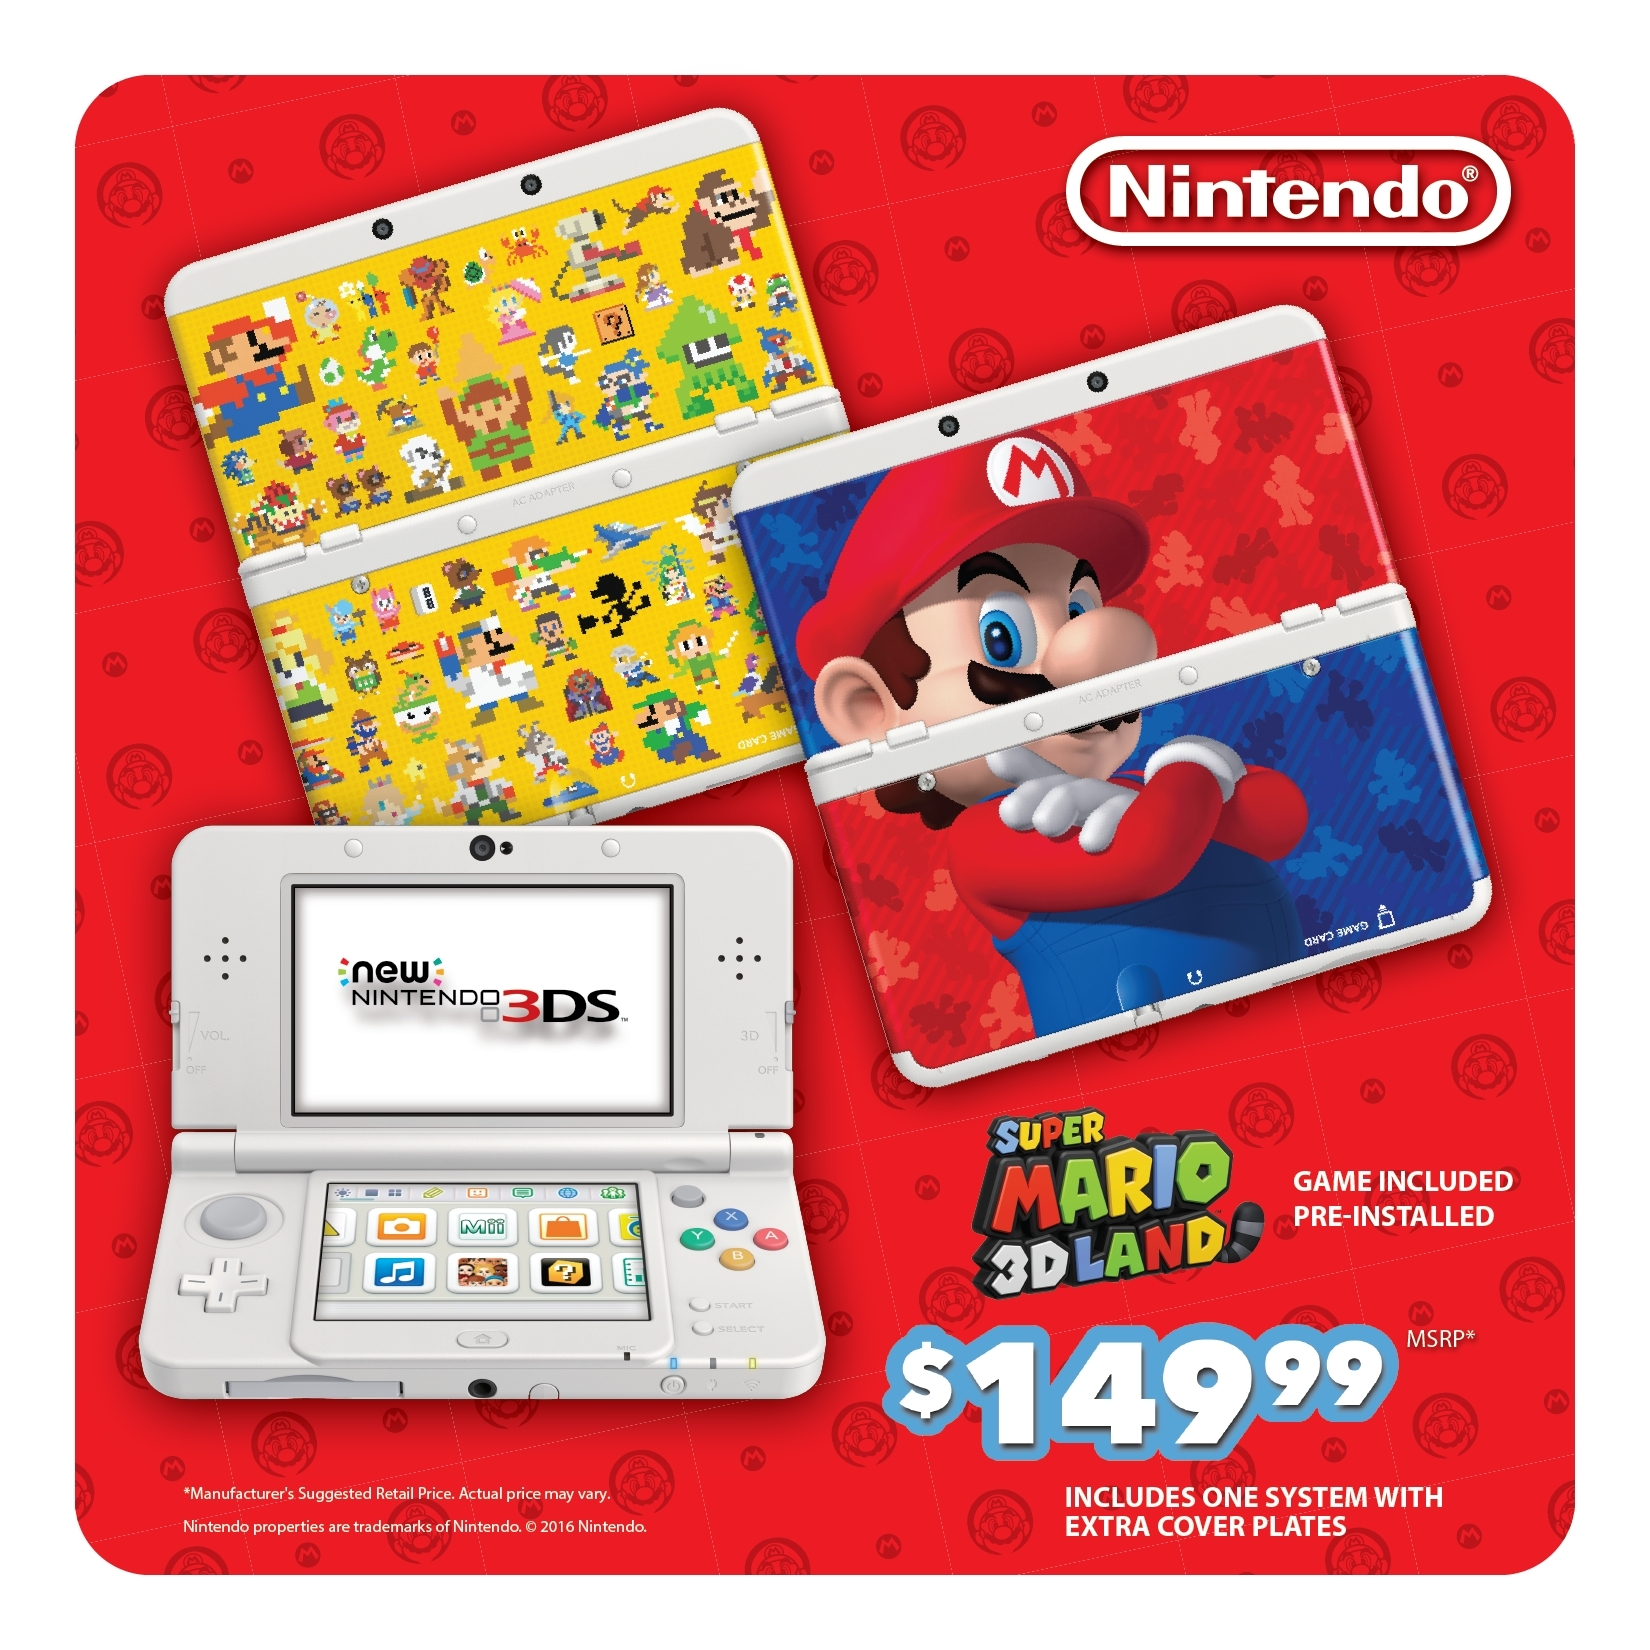 Nintendo Announces Back To School Deals Offers Some Of The Biggest Hits For Under 20 Business Wire